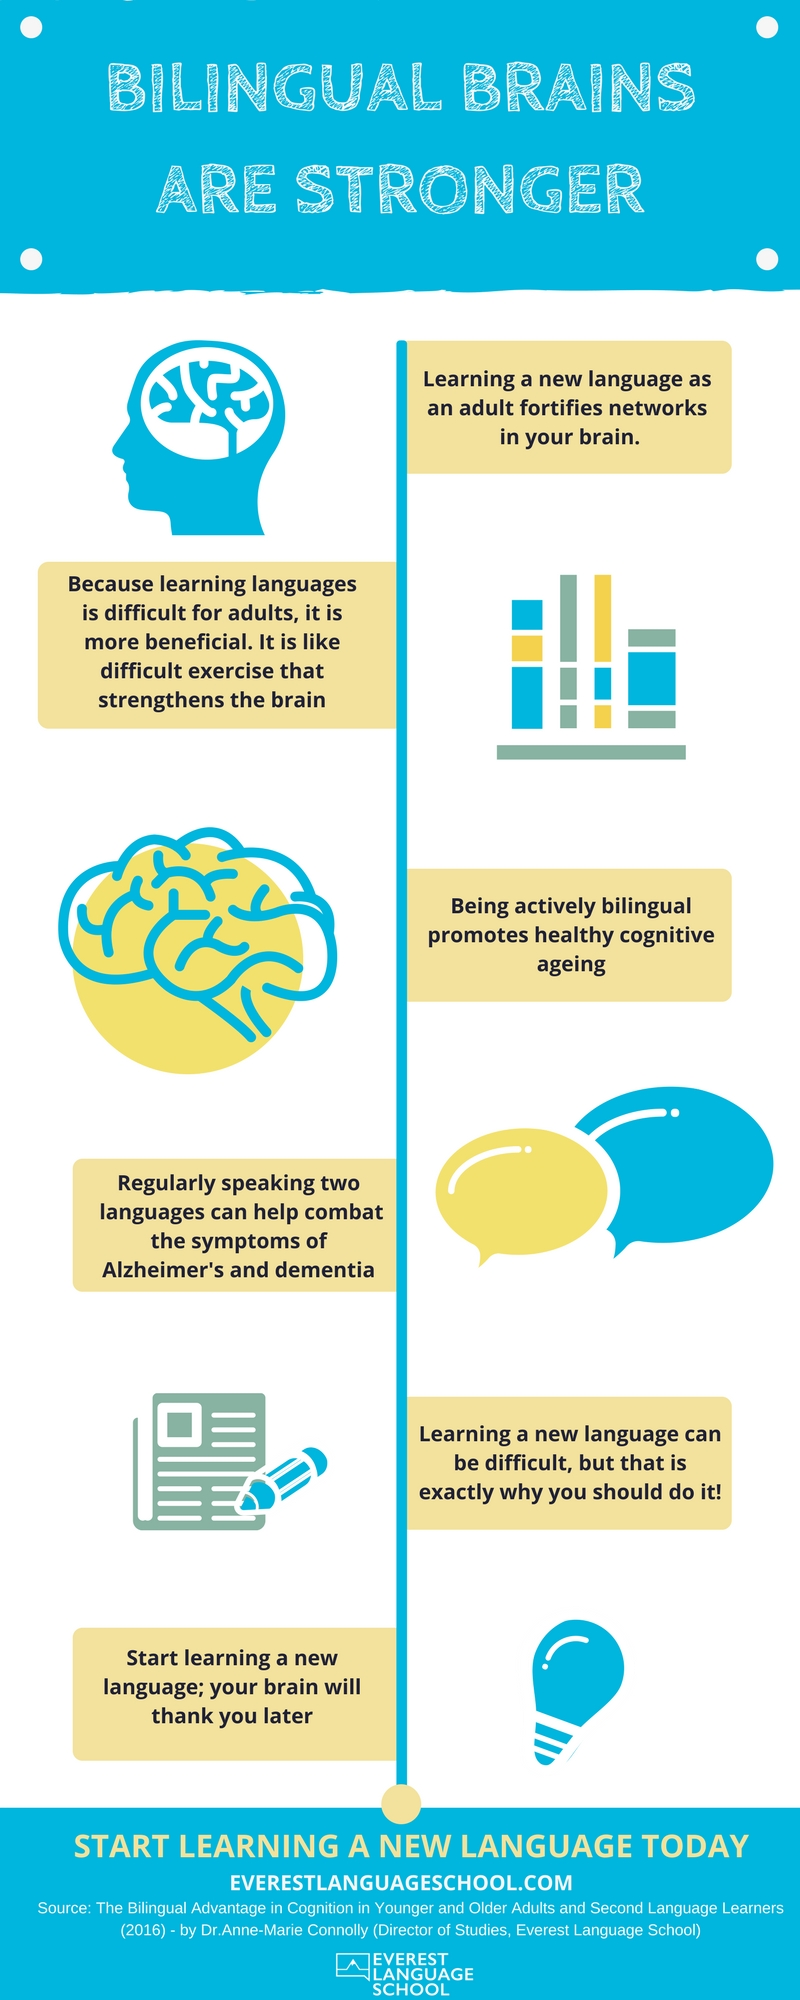 Bilingual brains are stronger